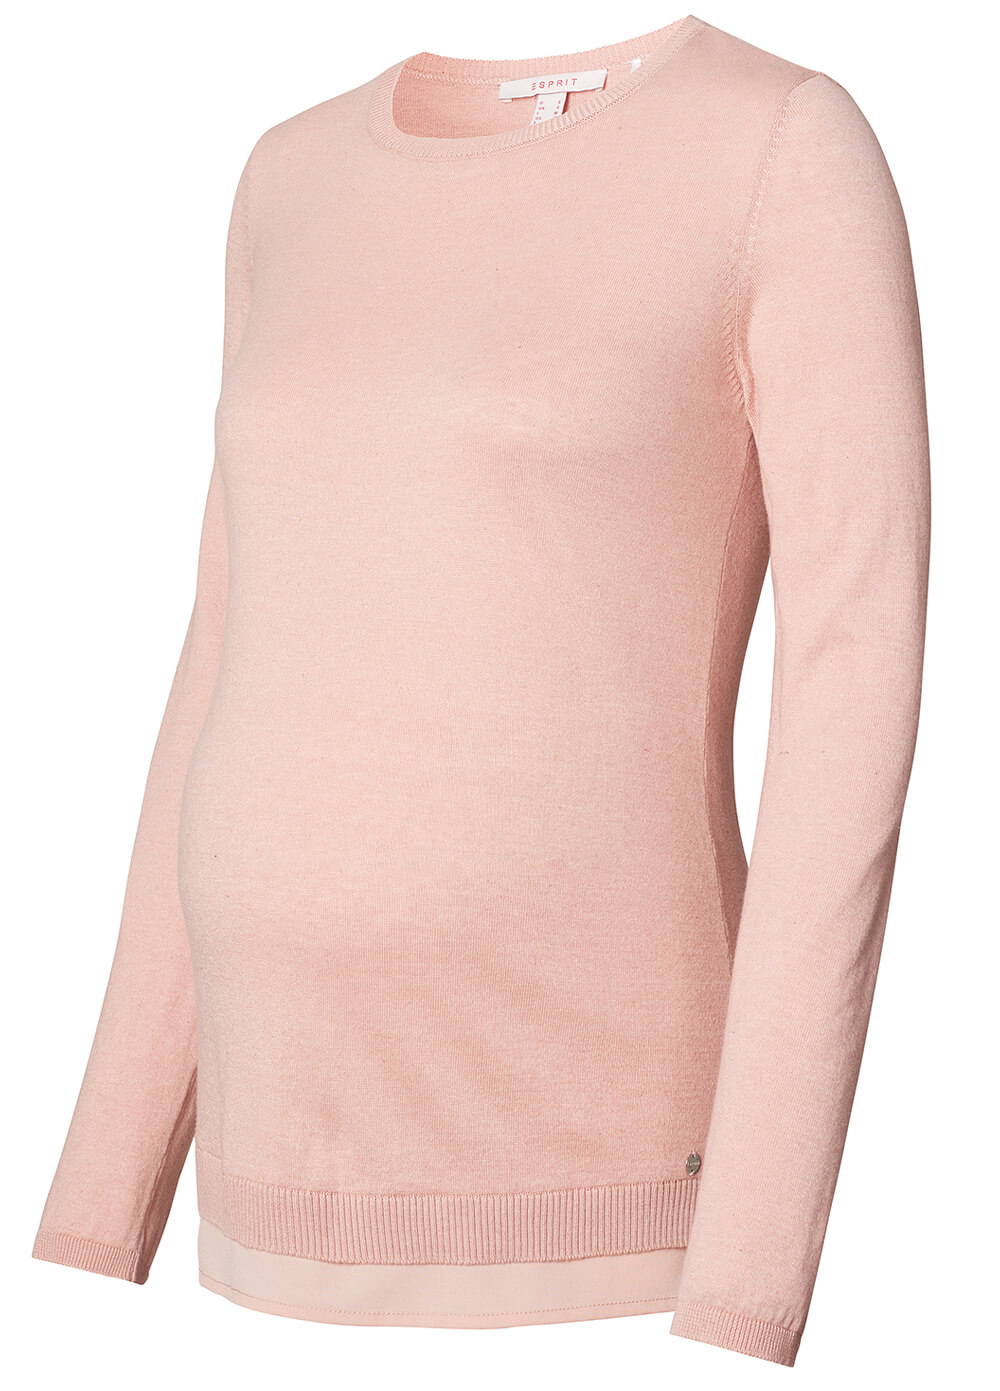 Maternity Knit Jumper w Blouse Hem in Champagne Pink by Esprit